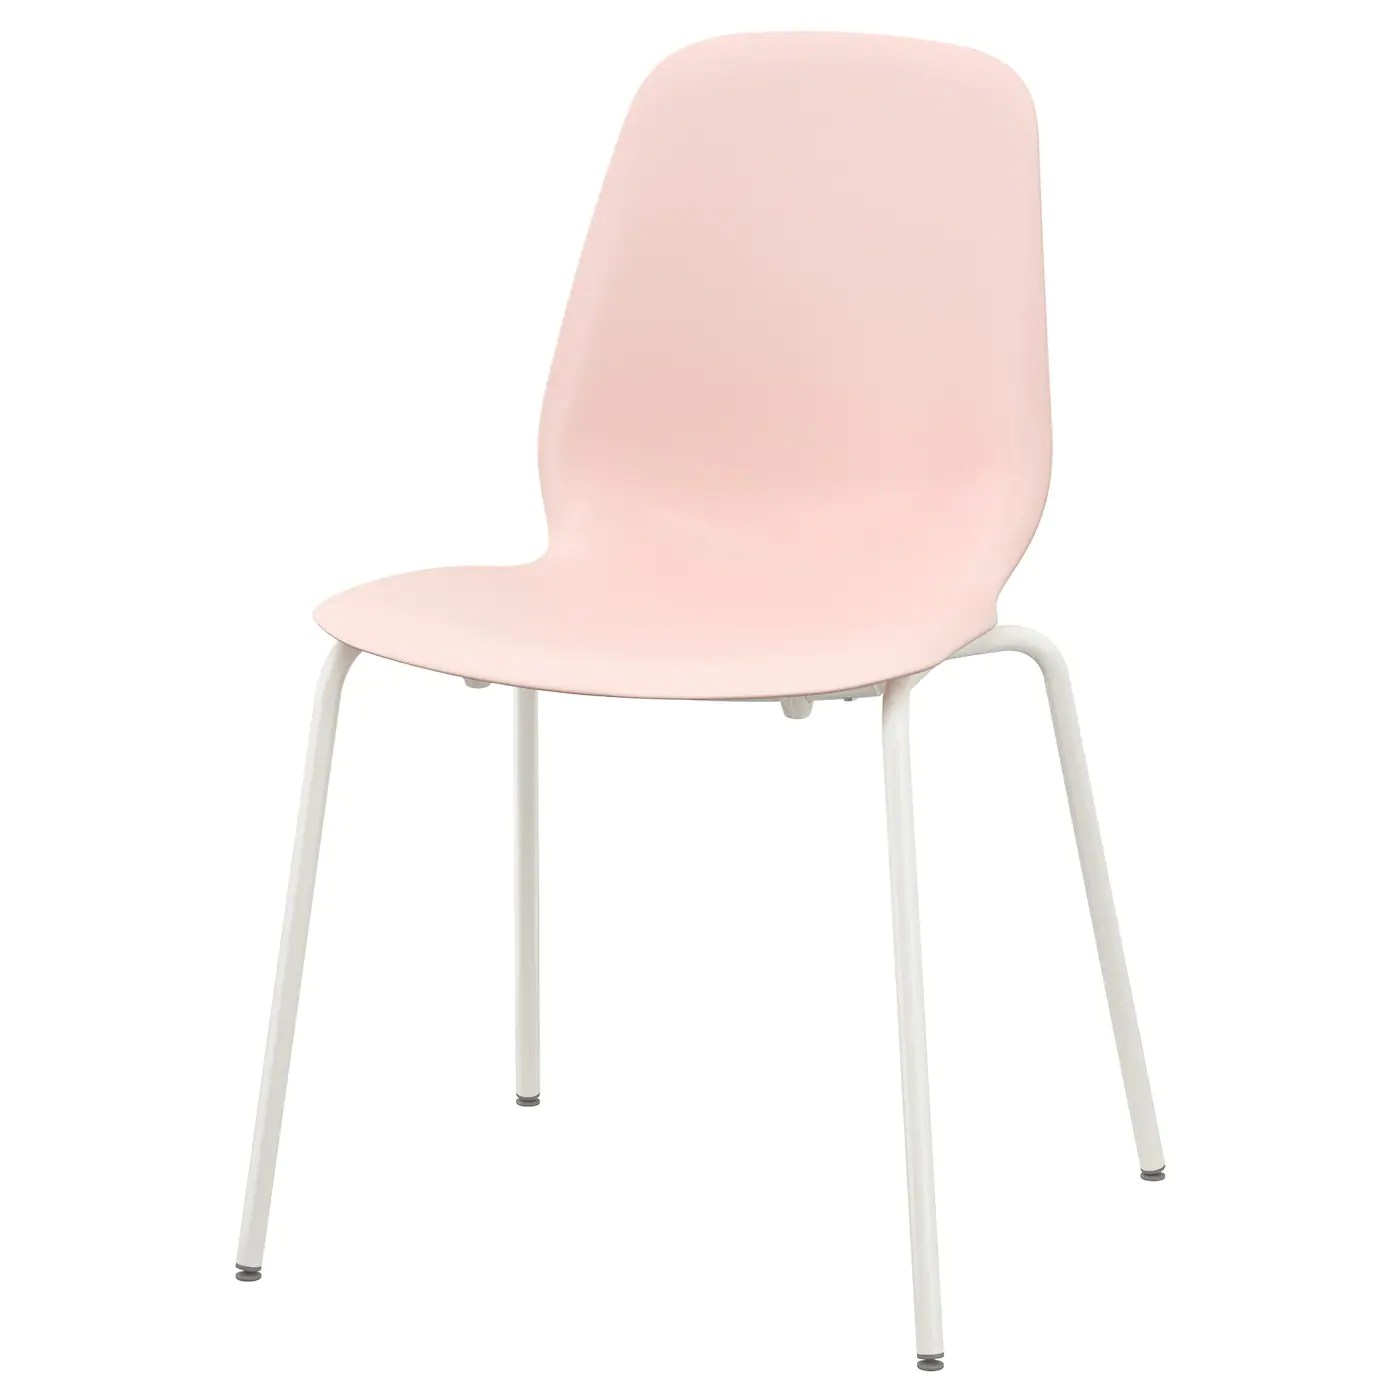 pale pink chair rocking gliders leifarne broringe white ikea